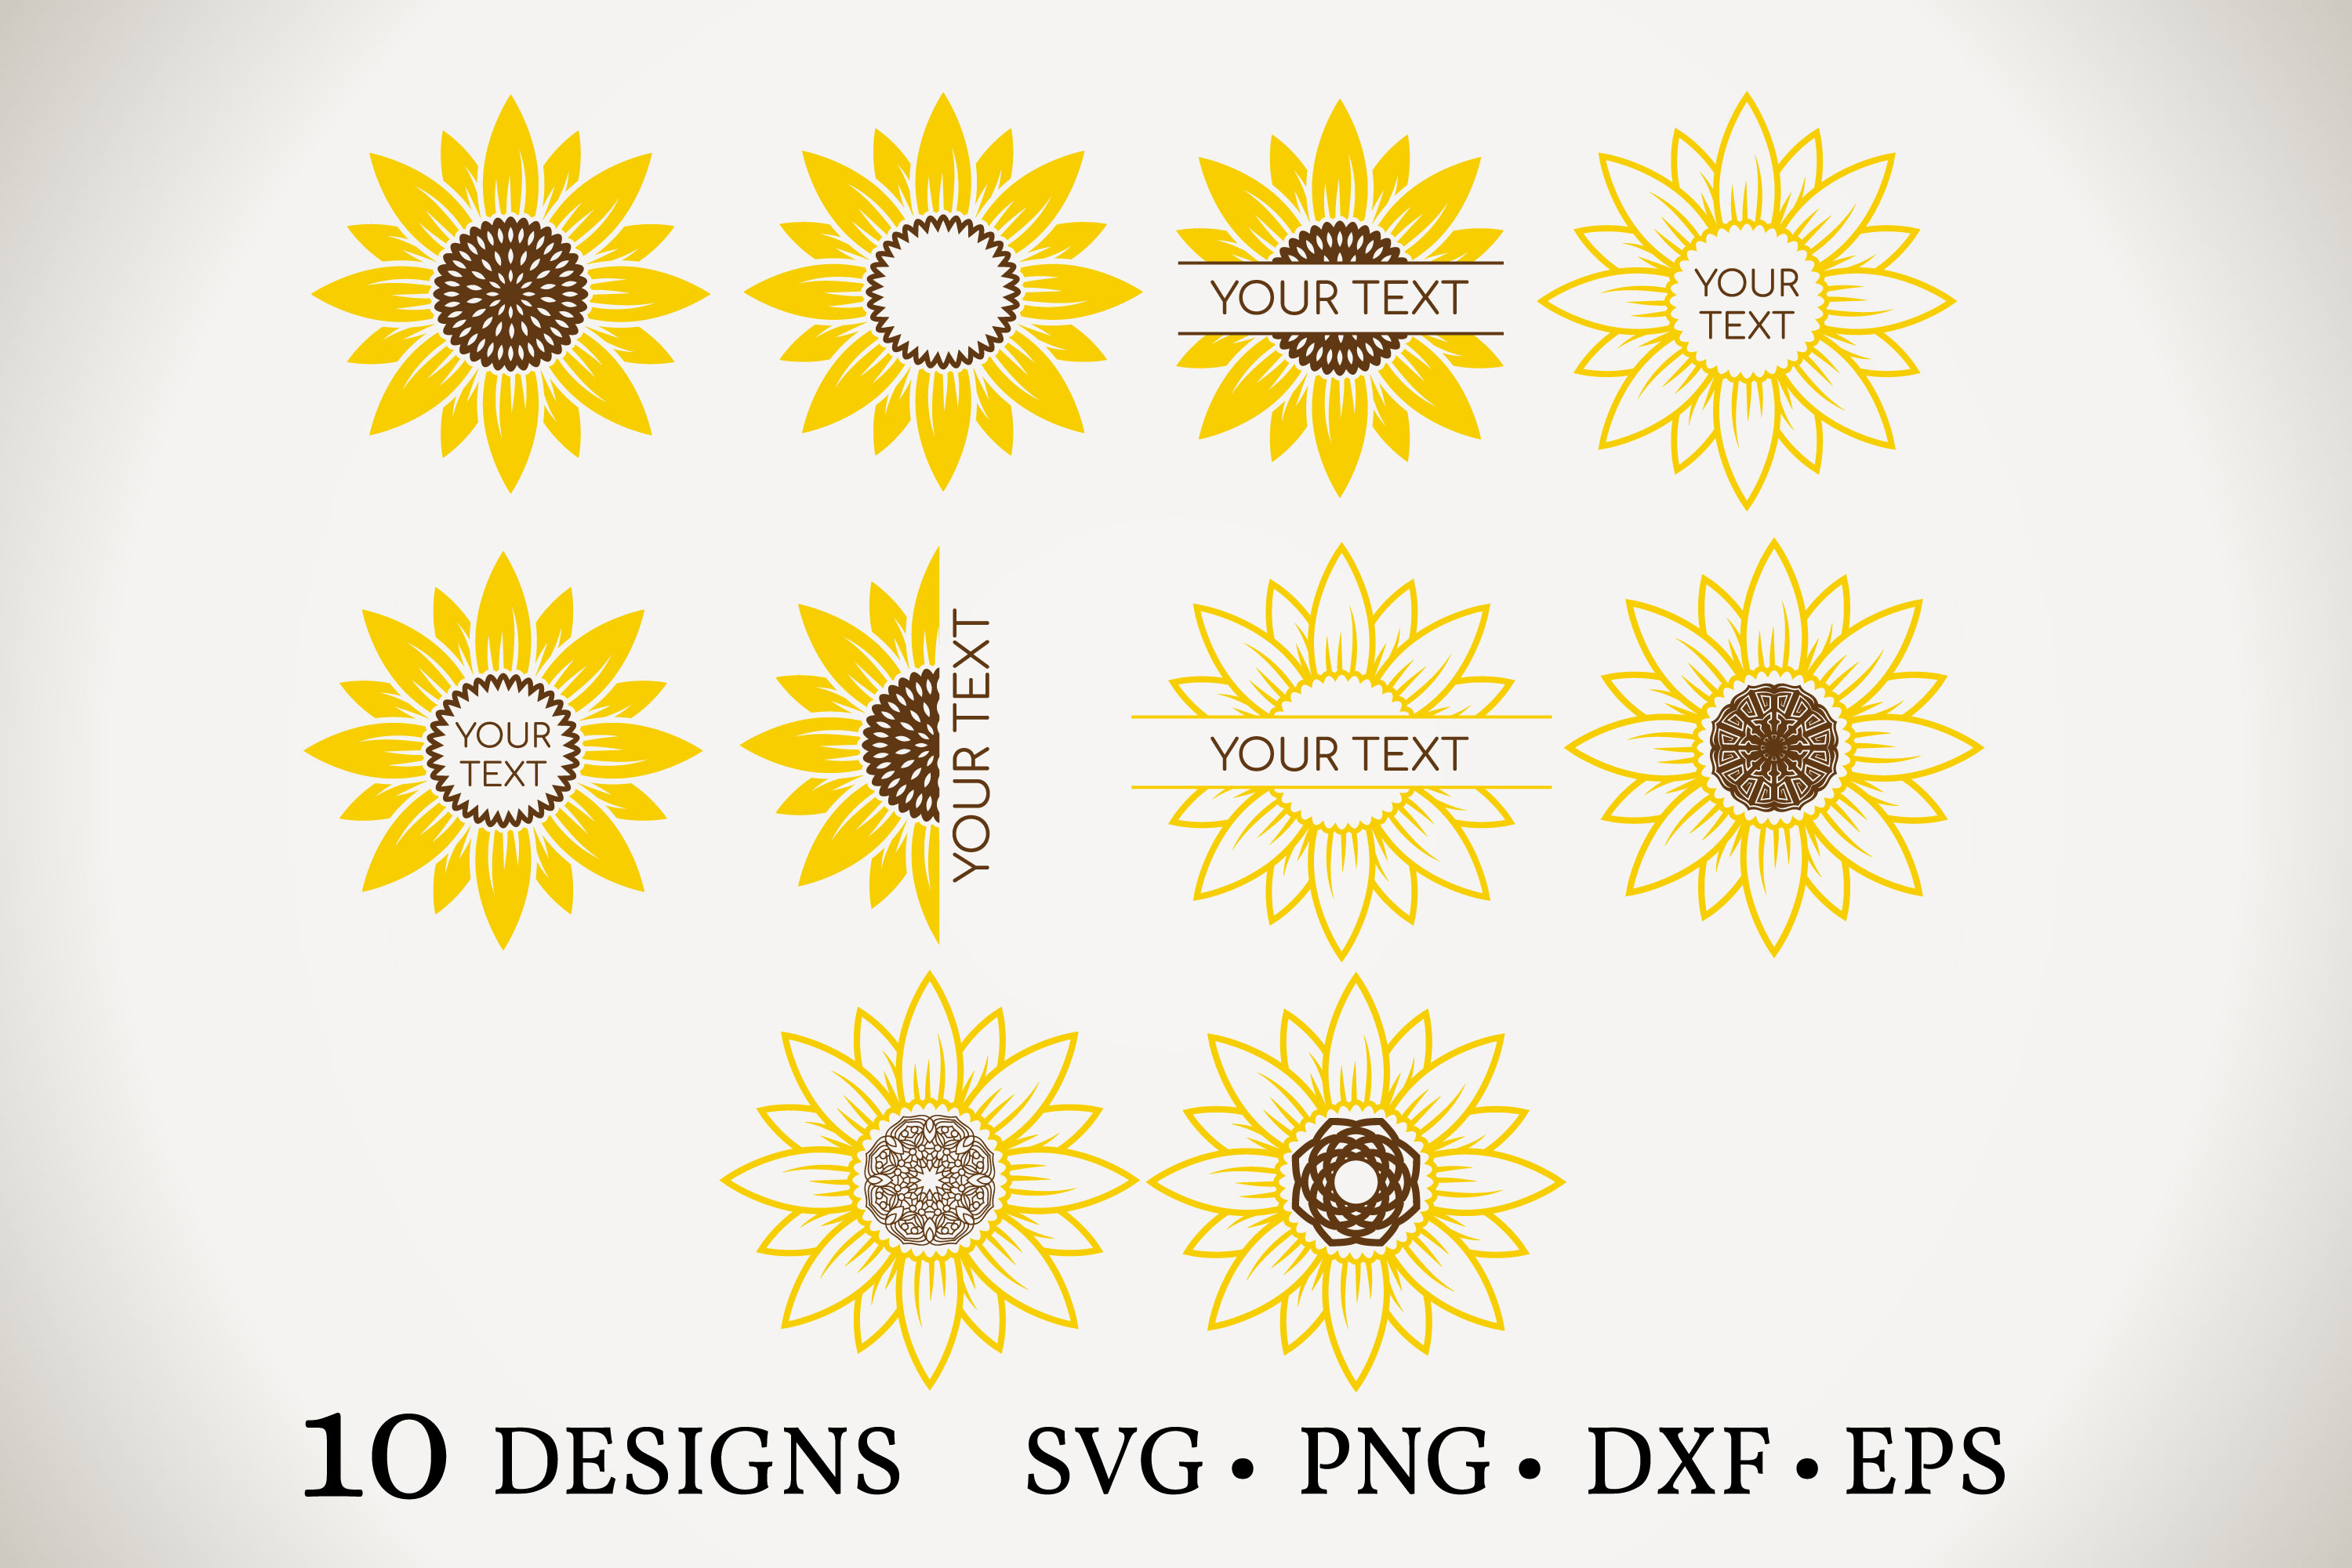 Download Free Sunflower Graphic By Euphoria Design Creative Fabrica for Cricut Explore, Silhouette and other cutting machines.